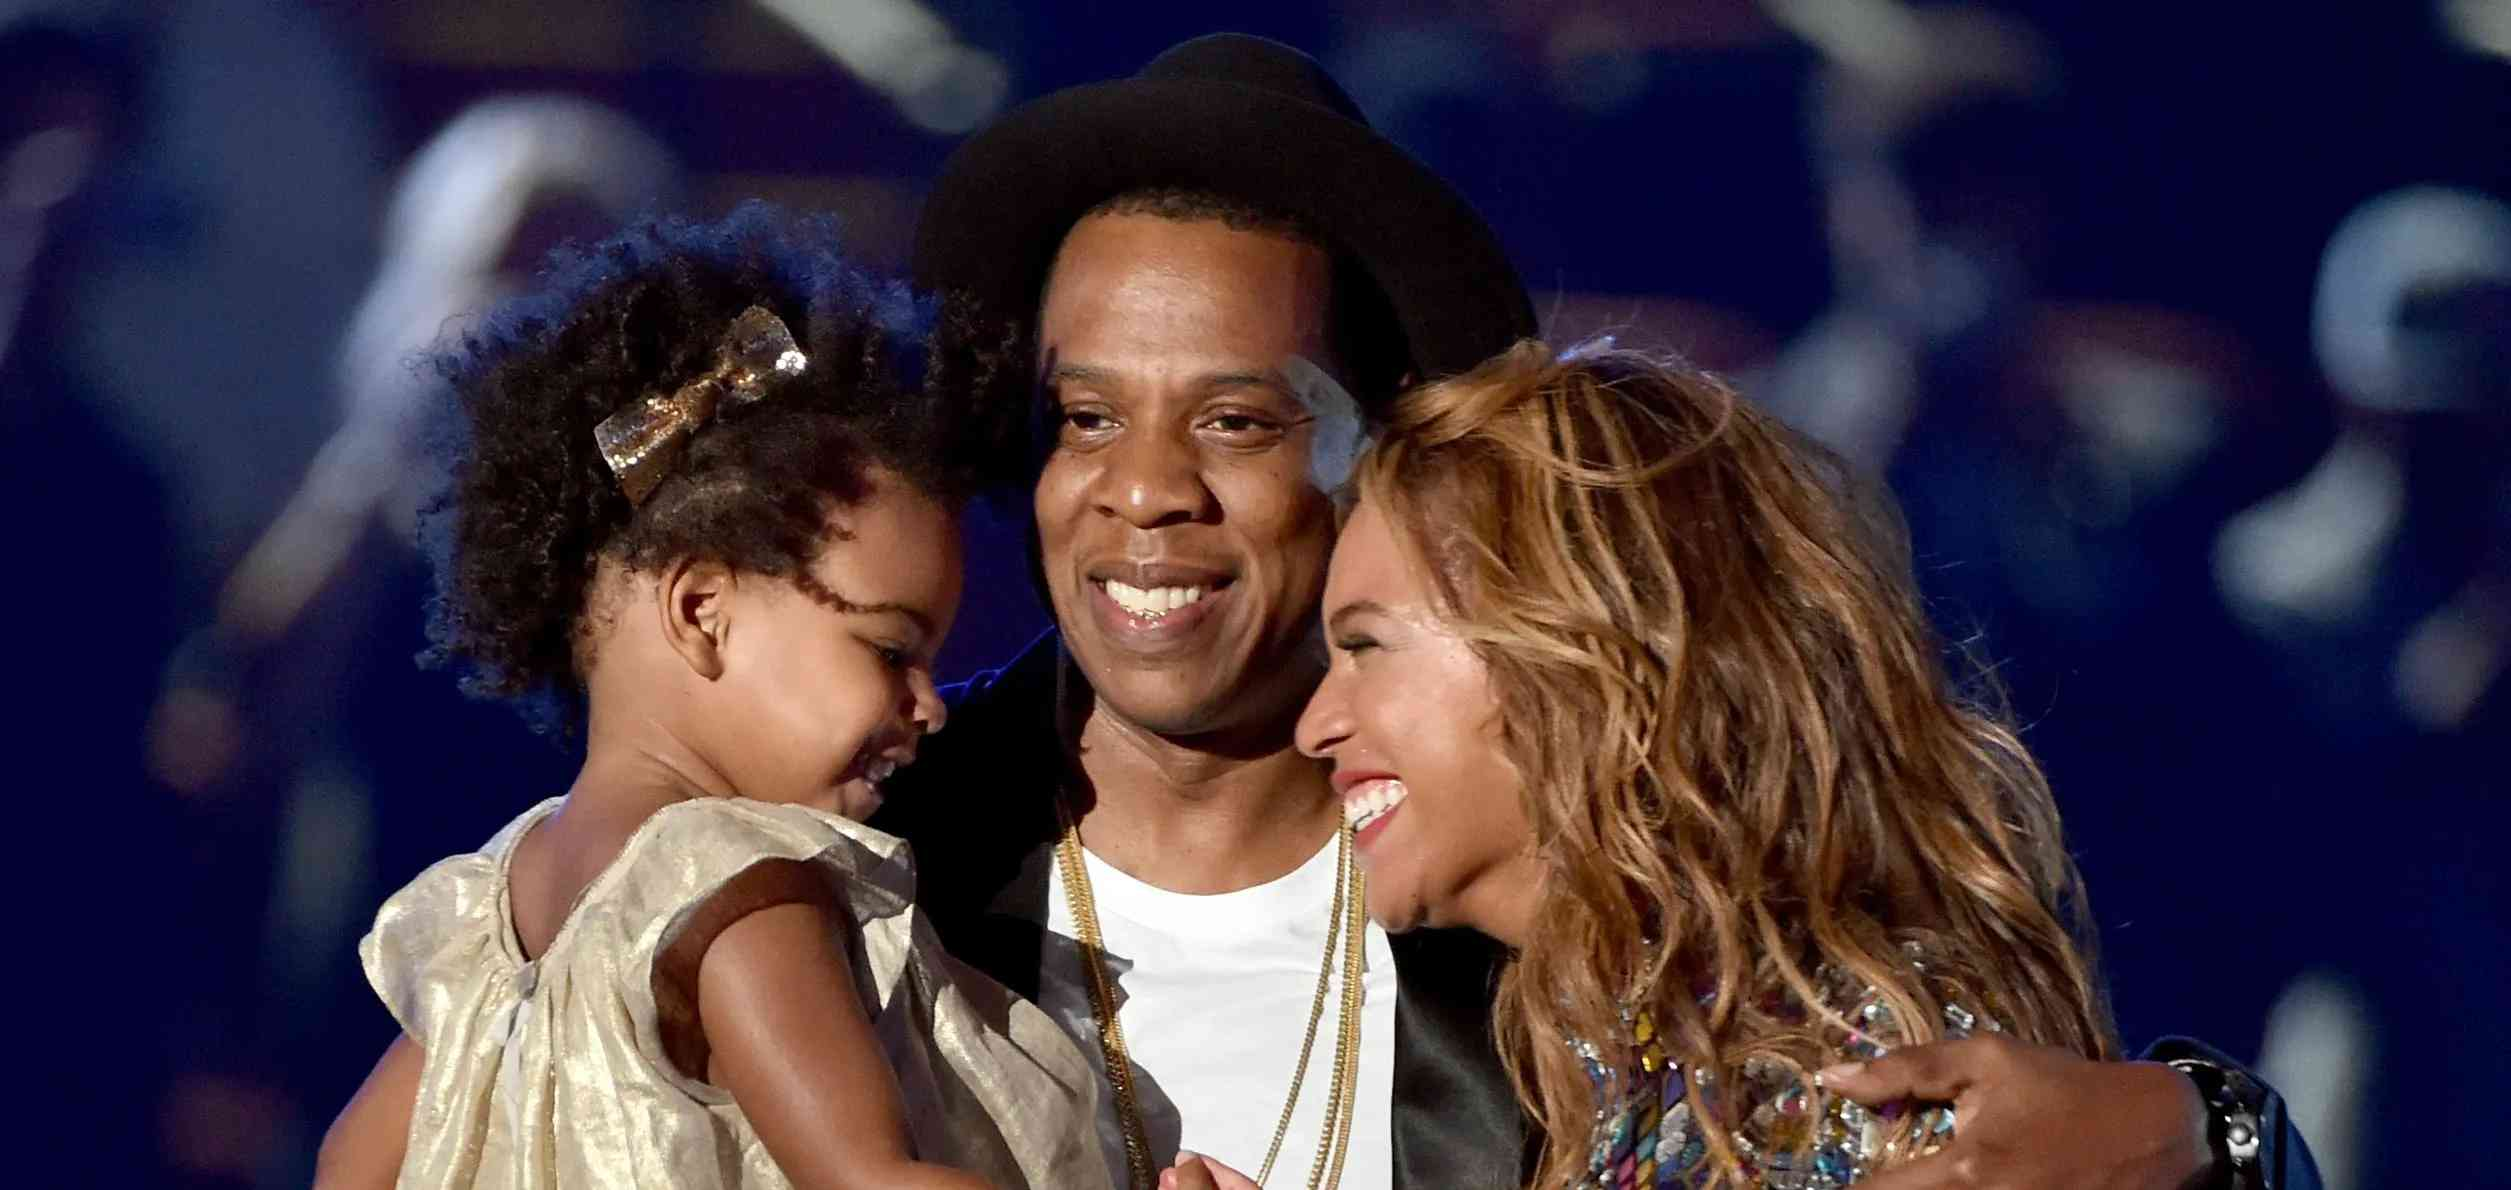 beyonc 233 gives birth to twins with jay z e news 1